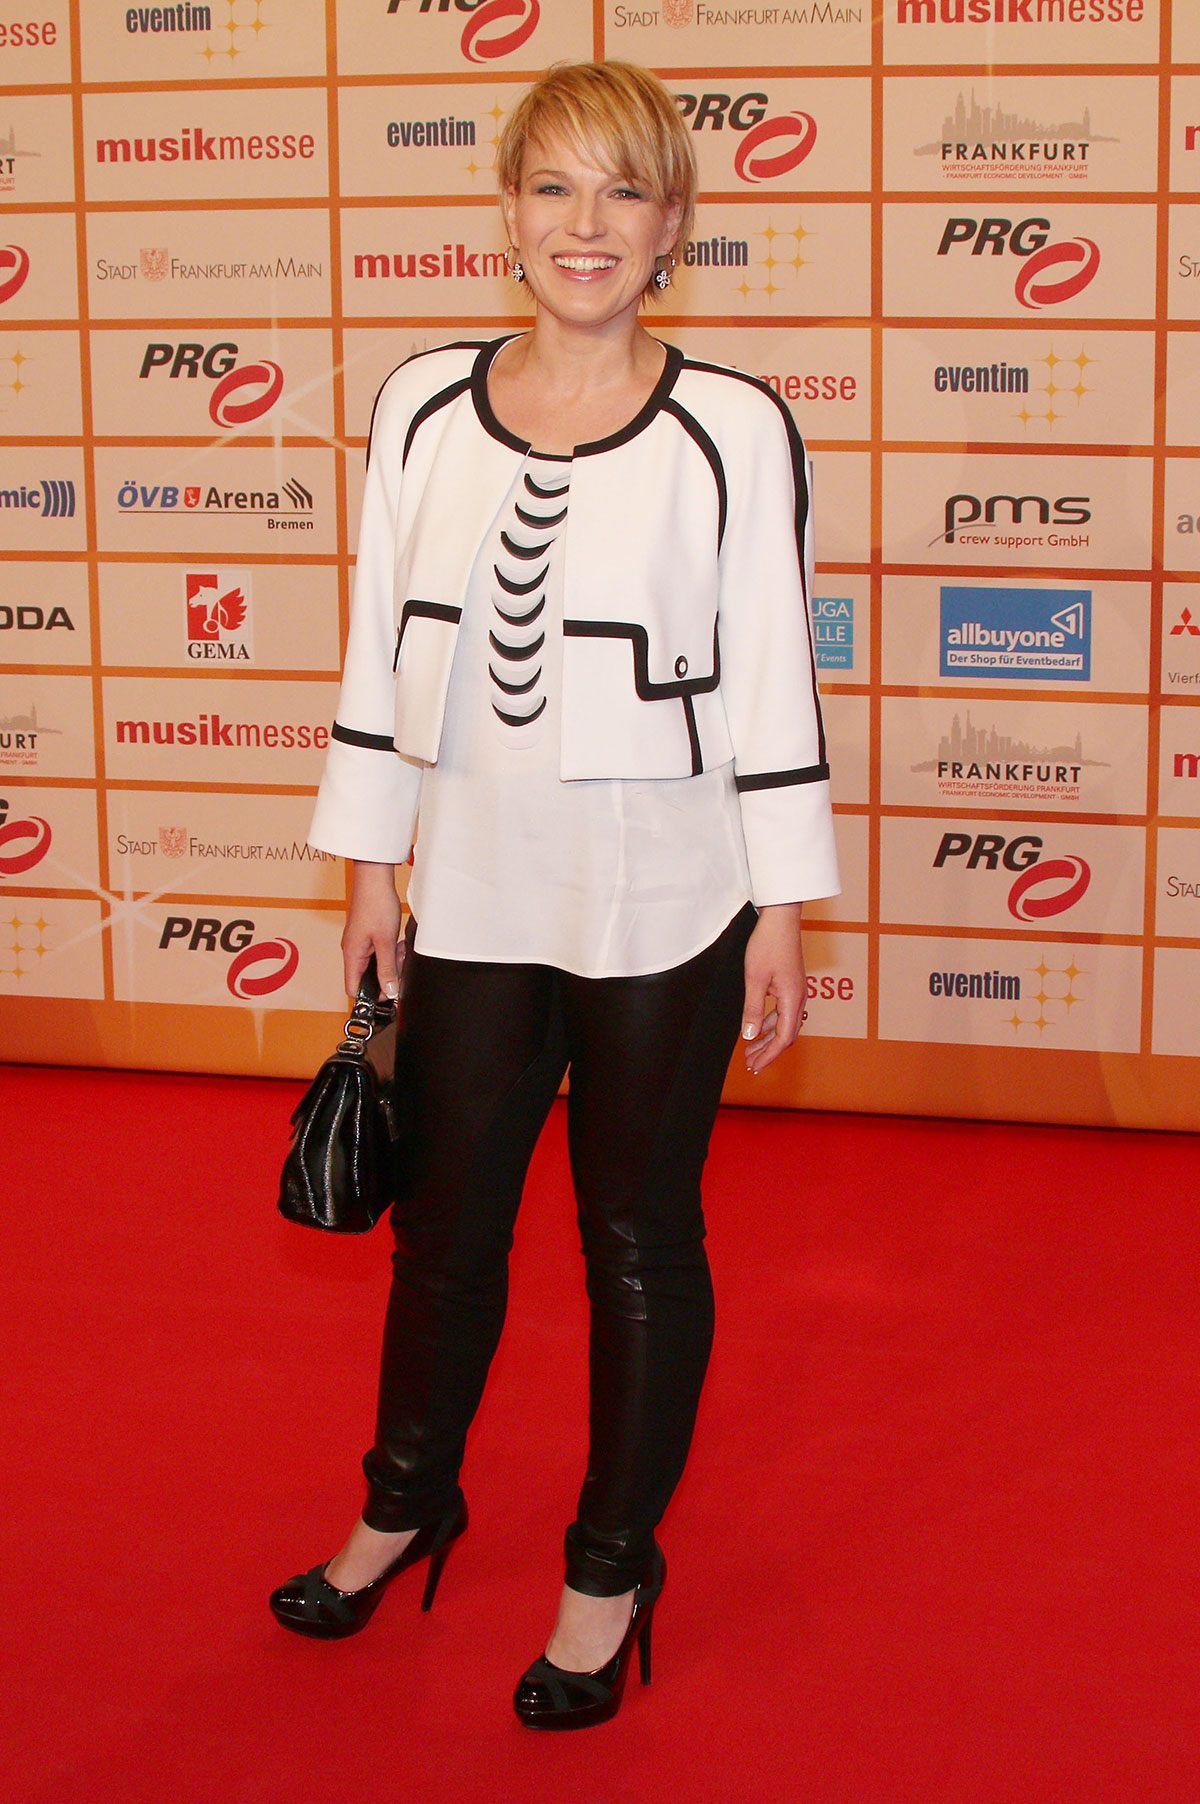 Andrea Ballschuh attends LEA ceremony in the Festhalle